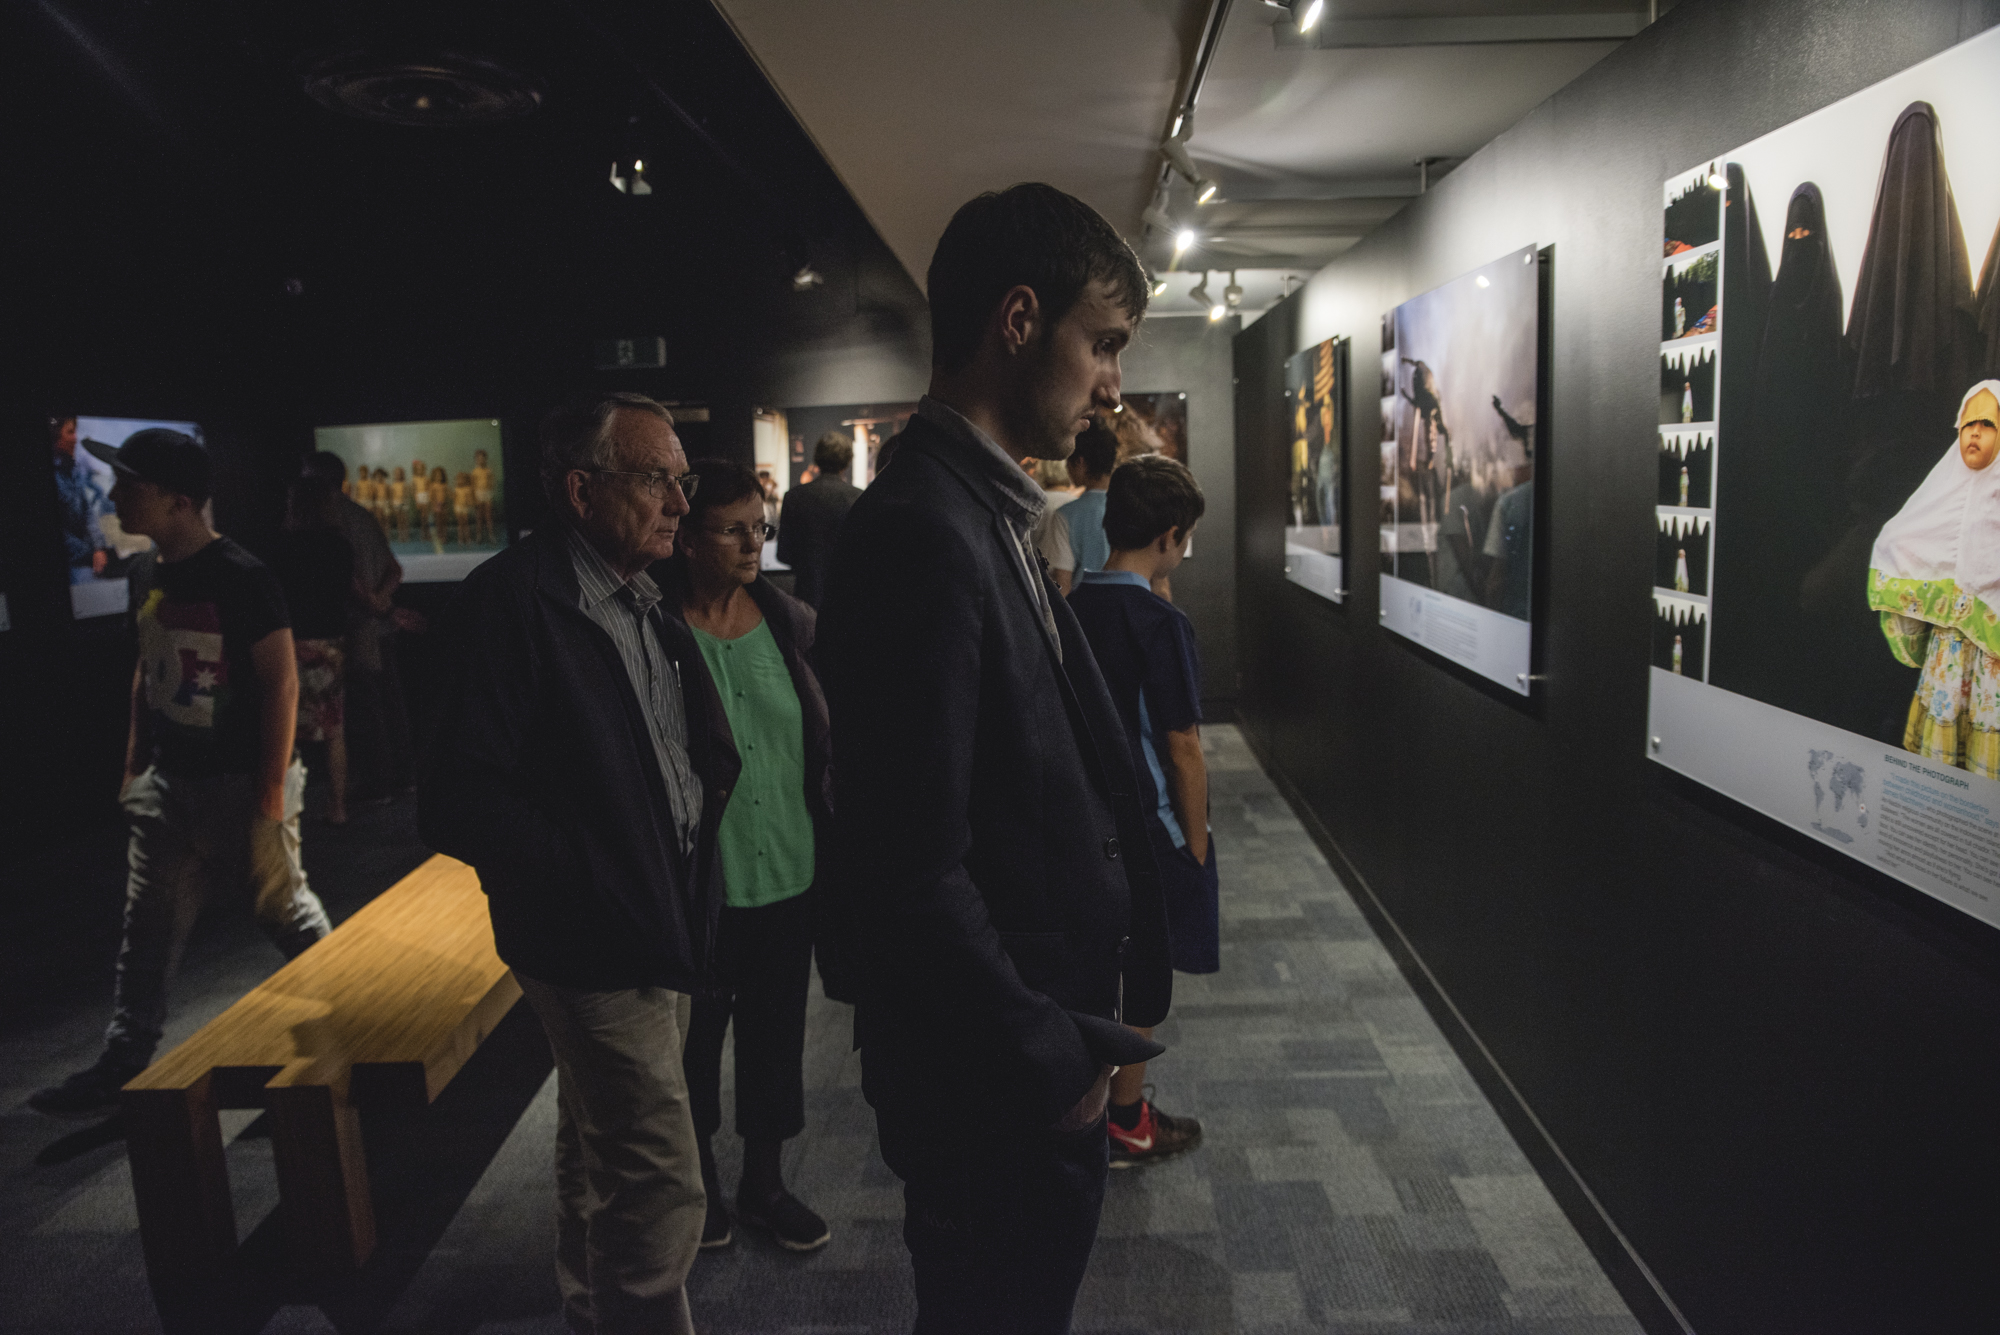 VISITORS TO THE NATIONAL GEOGRAPHIC PHOTOGRAPHIC EXHIBITION